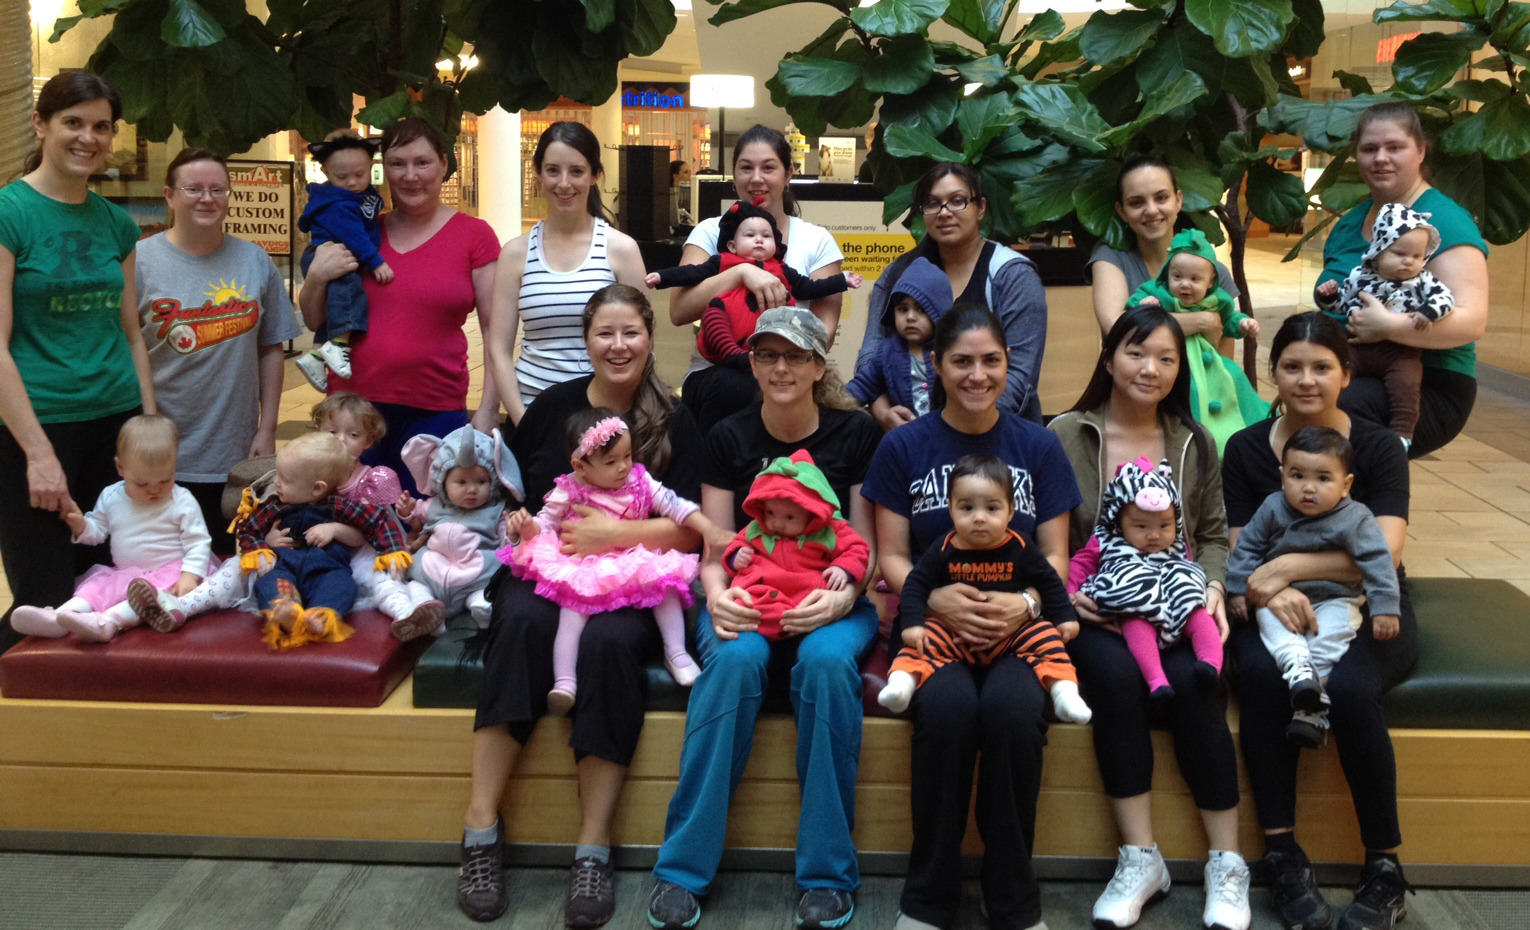 Baby's 1st Halloween Shop 'n Stroll at Lawson Heights Mall